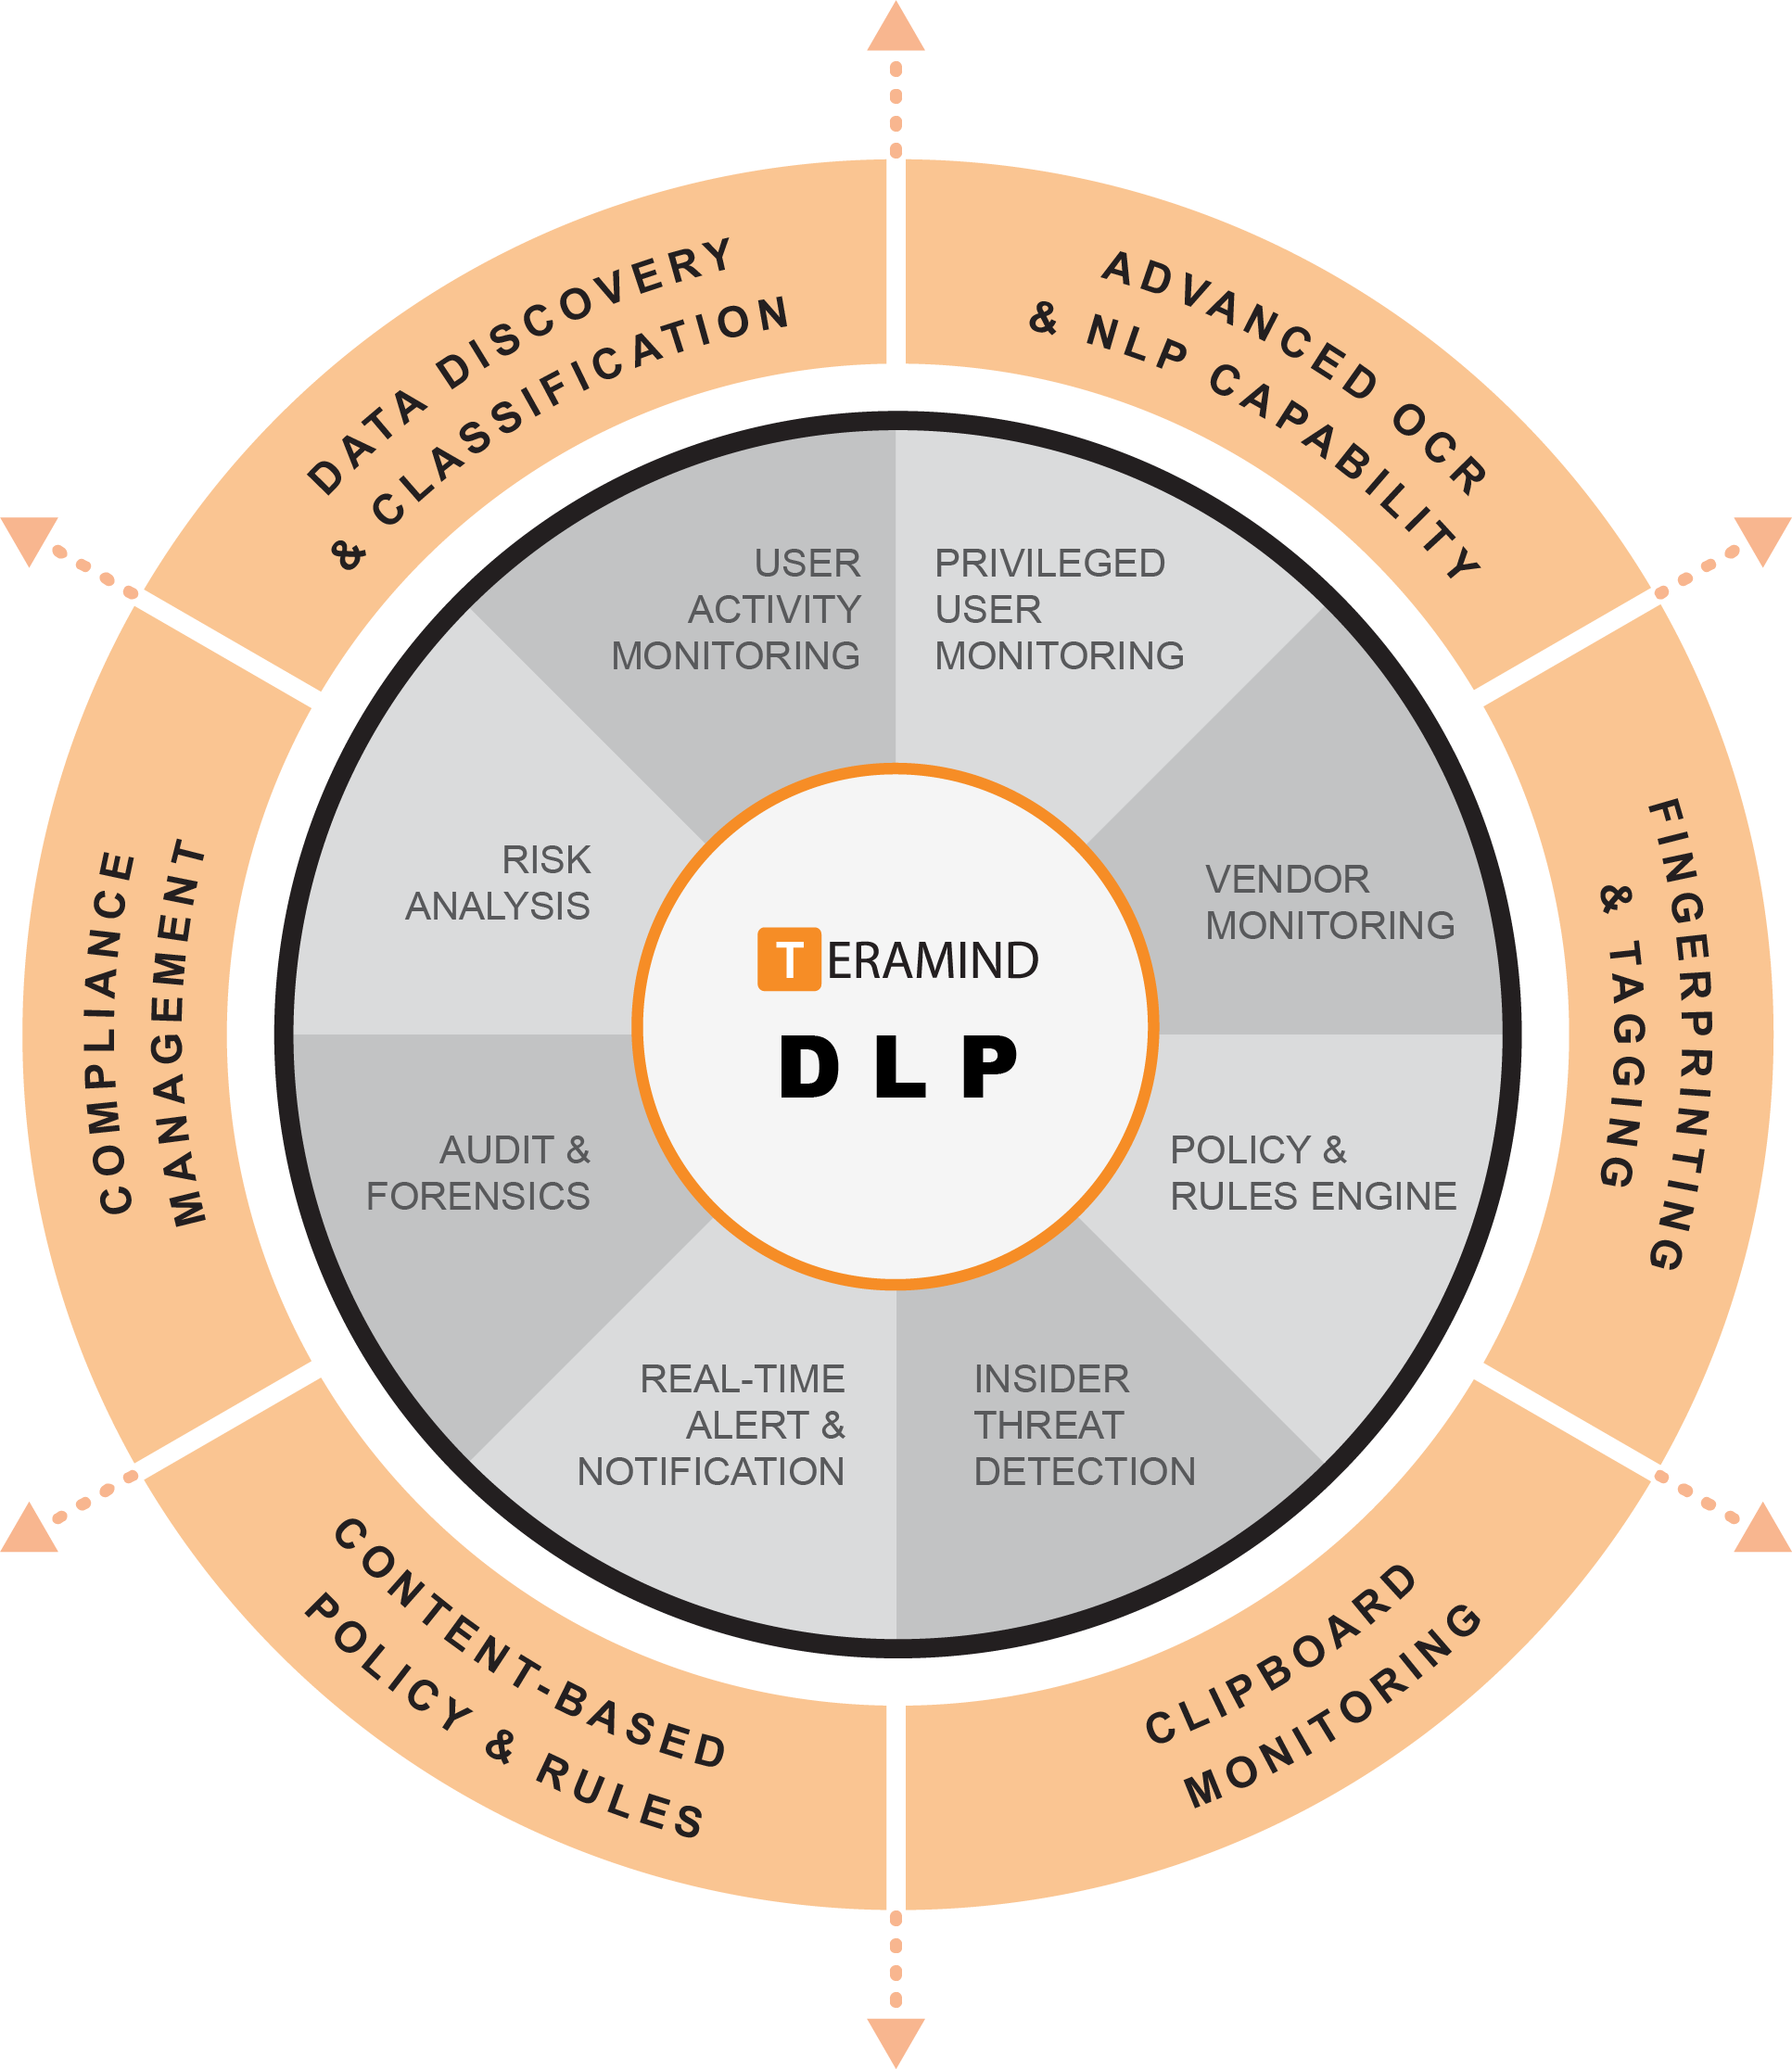 Teramind DLP value diagram